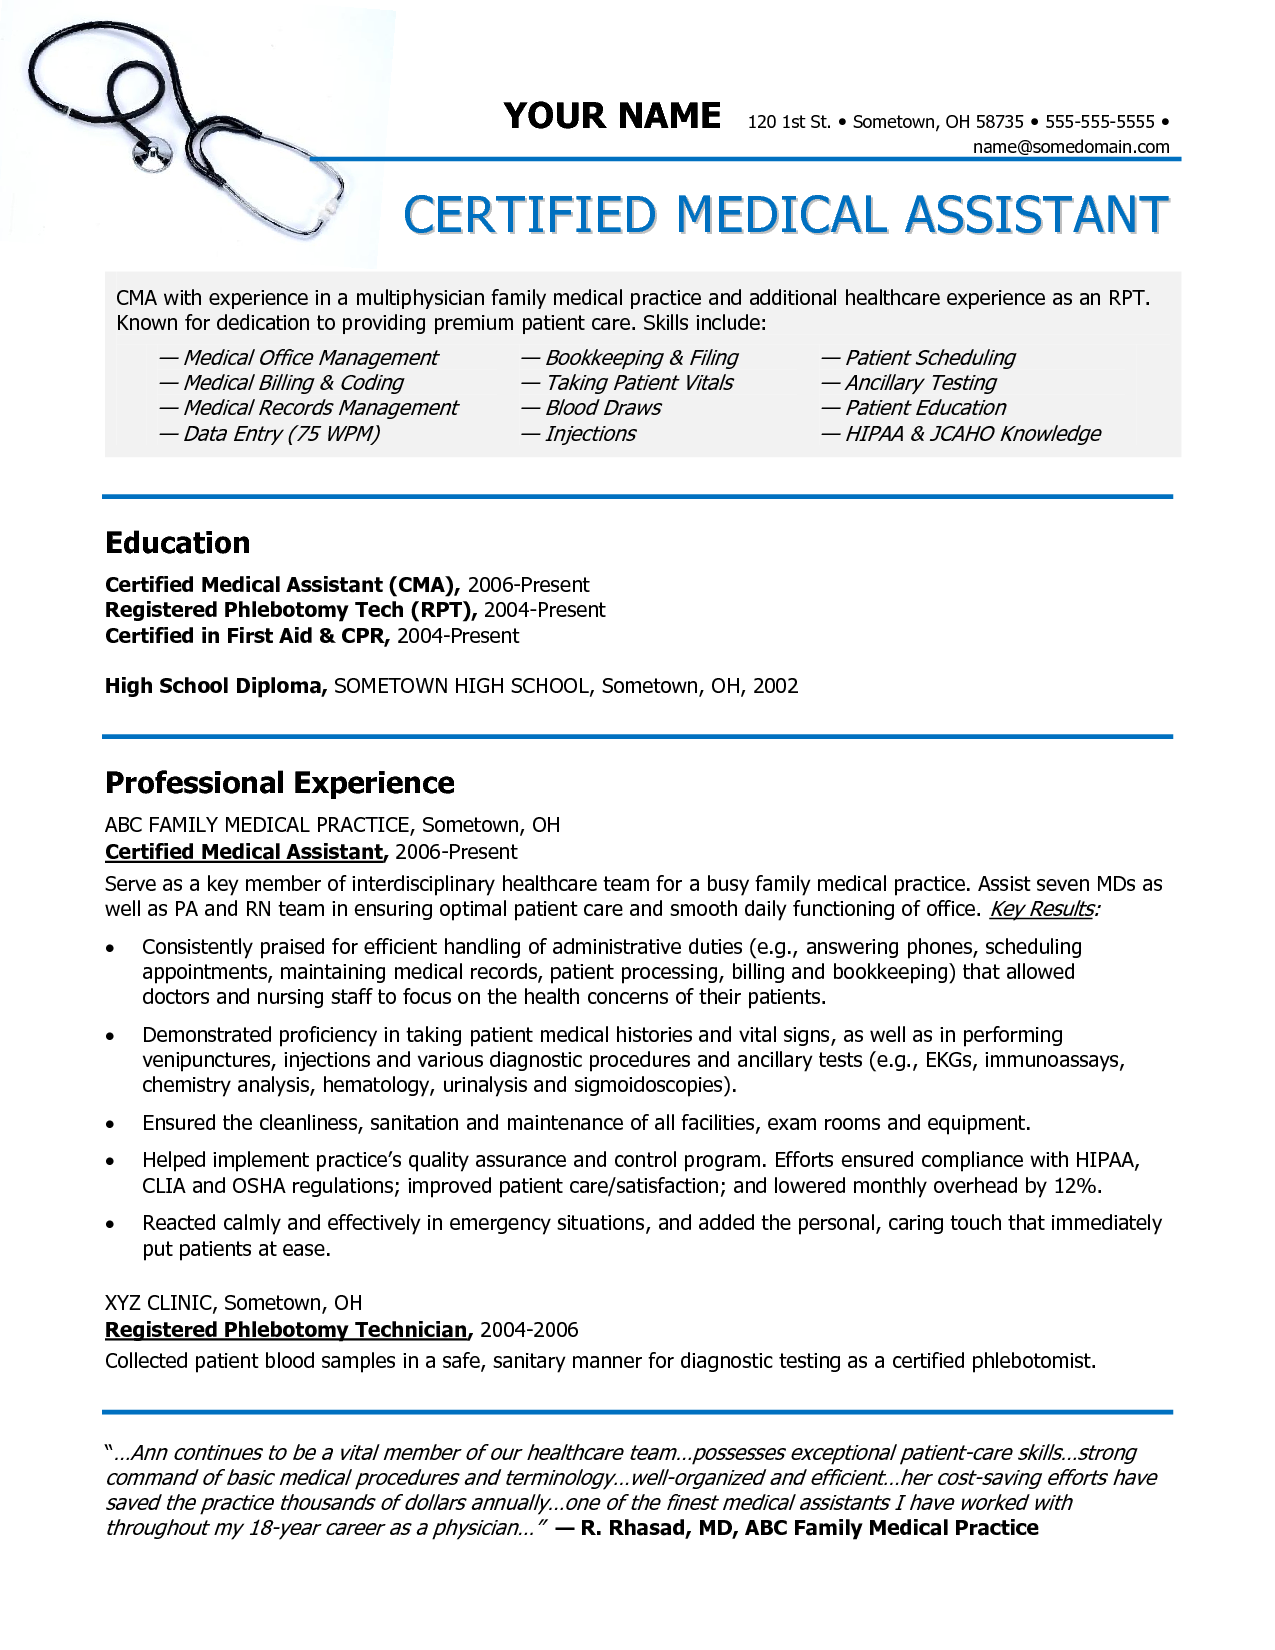 Resume Examples Medical Assistant | Resume Examples | Pinterest ...